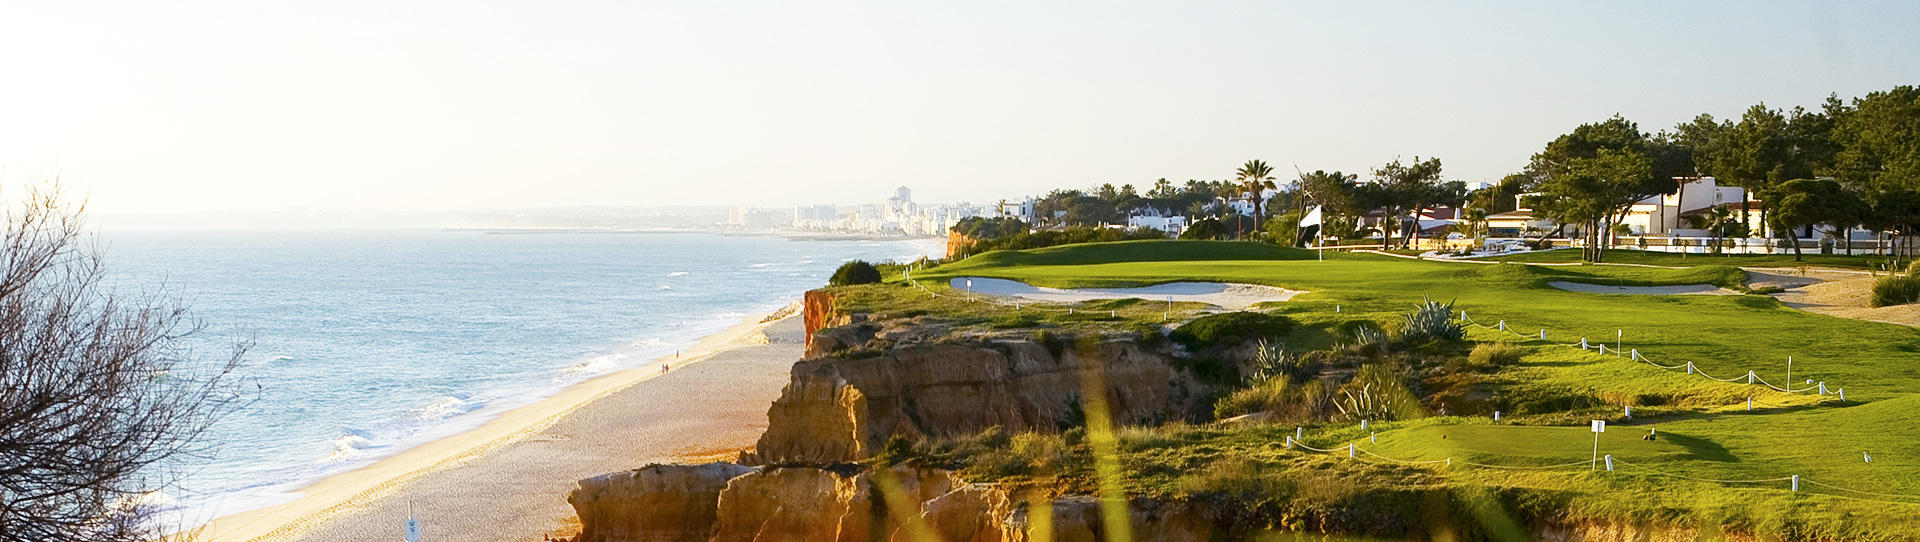 Vale do Lobo Royal - Photo 1